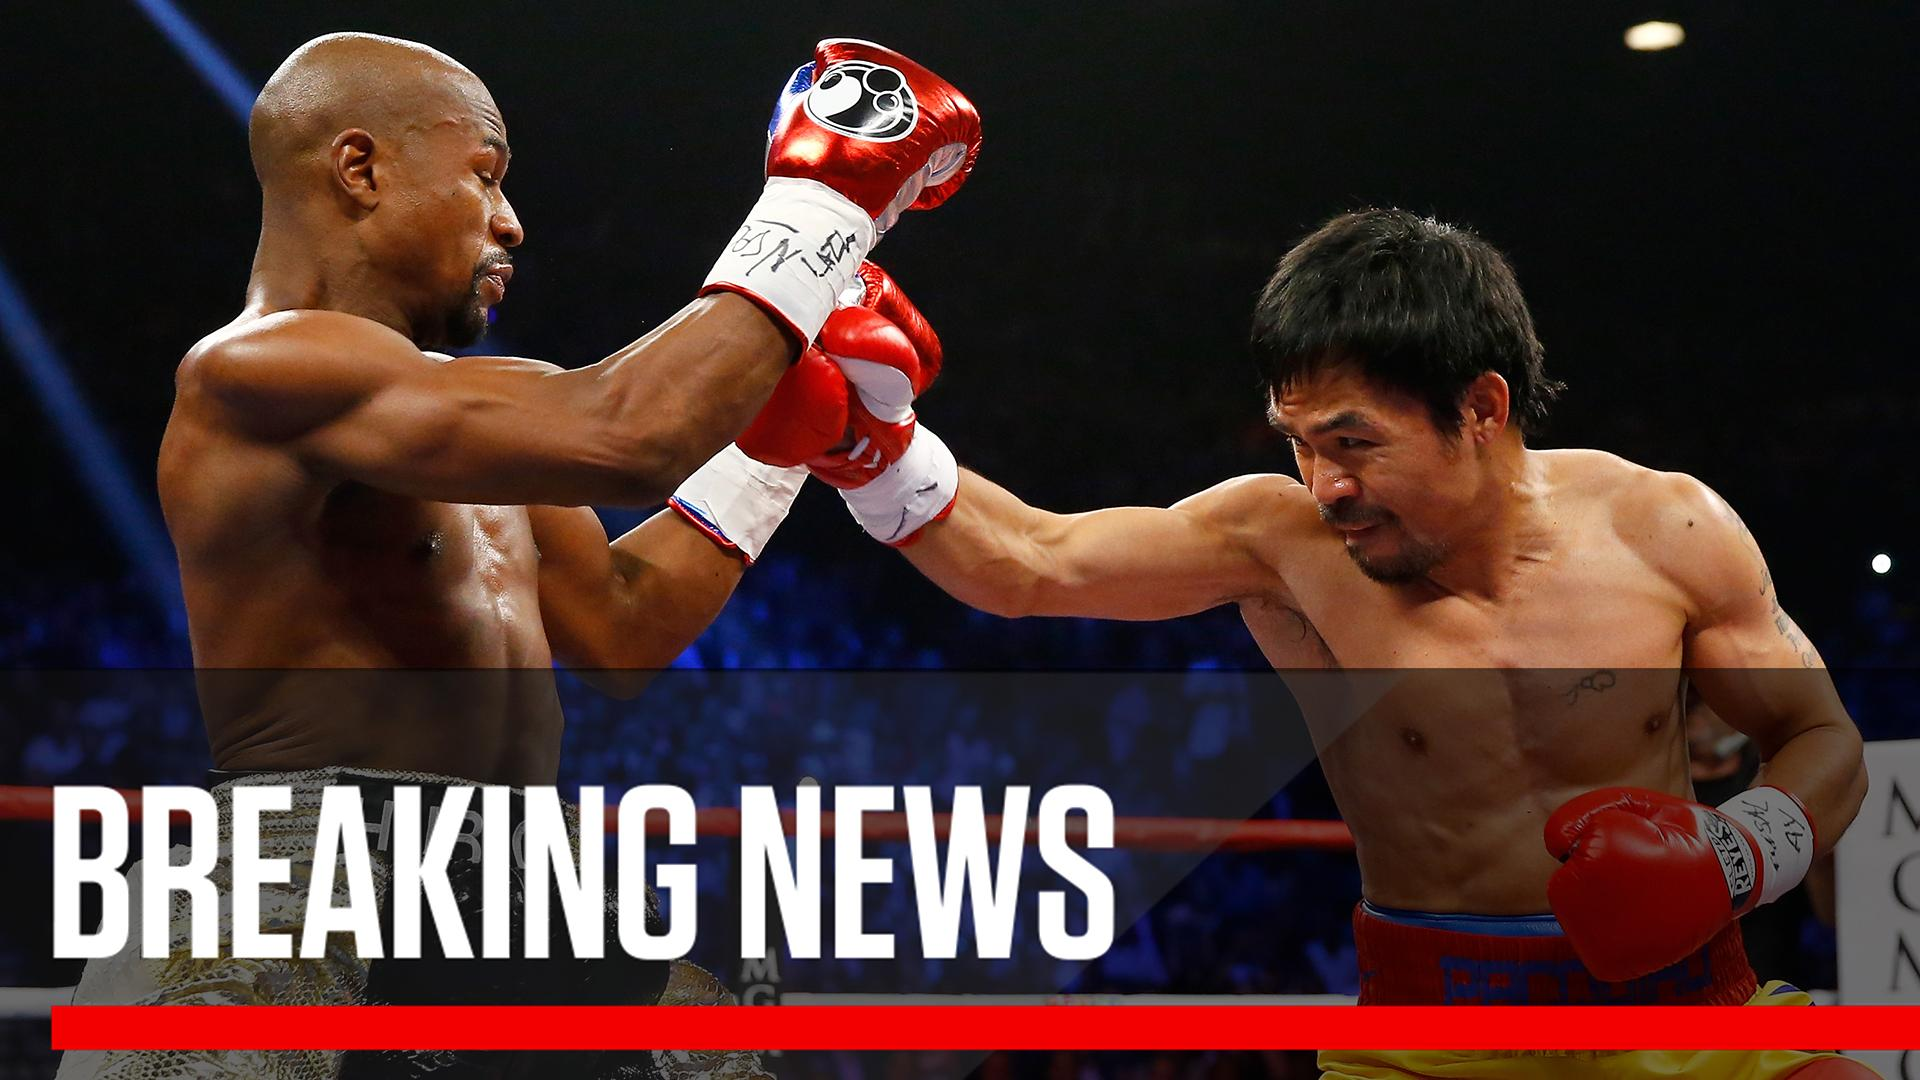 Breaking: Floyd Mayweather says a rematch with Manny Pacquiao is coming this year.   More: https://t.co/ARL1bL2gjw https://t.co/trNJYmqhJl